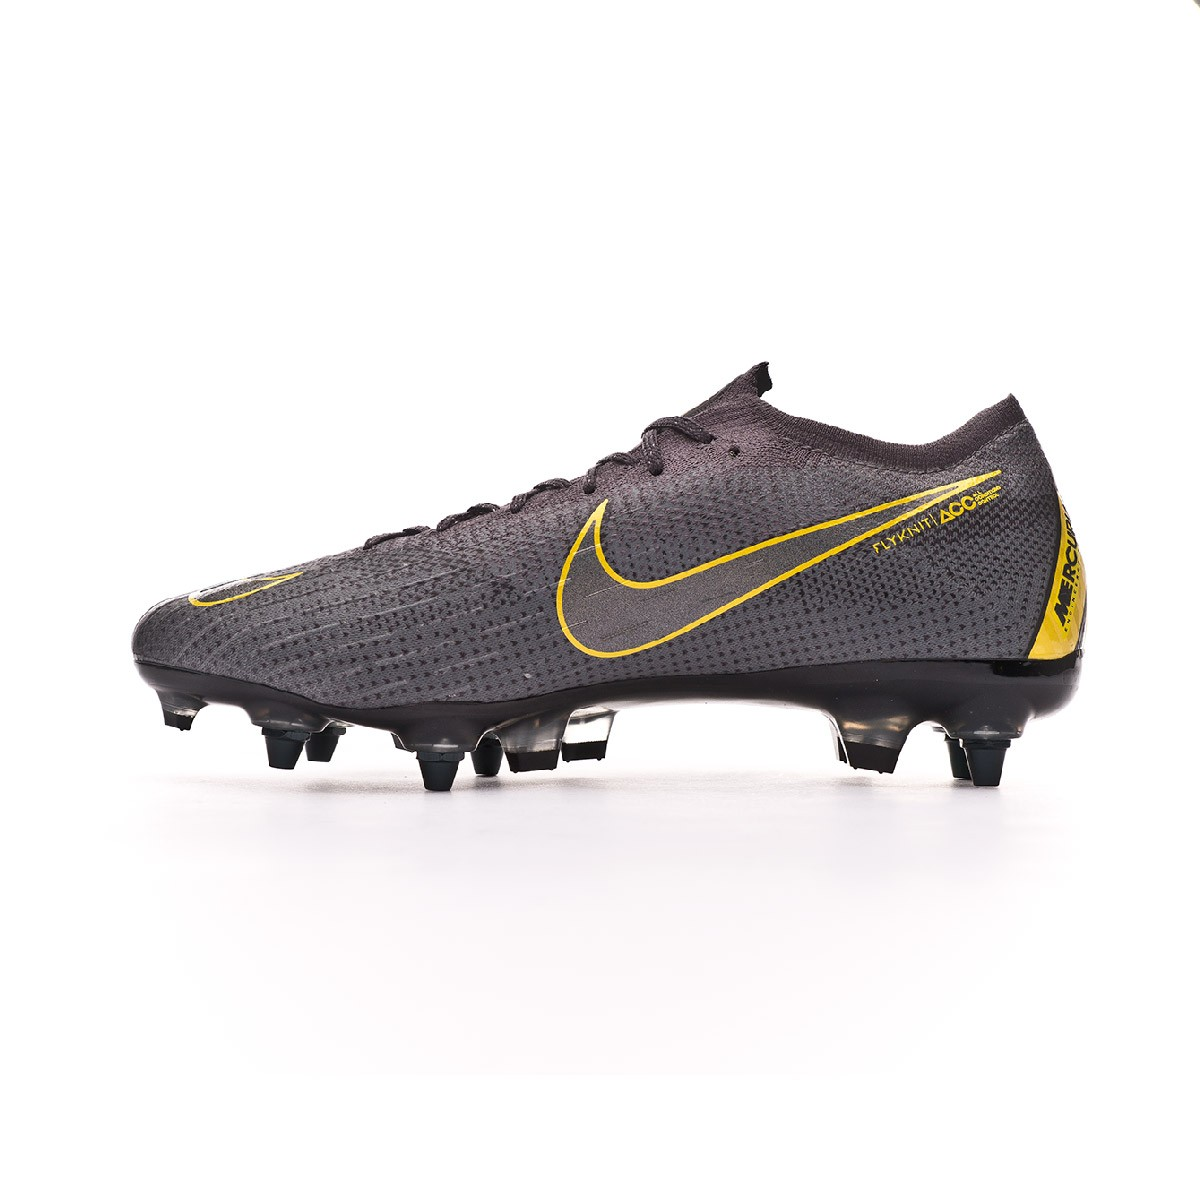 Grey Black Dark Mercurial Thunder Sg Pro Clog Anti Bota Vapor Xii Elite YDH2EW9Ie